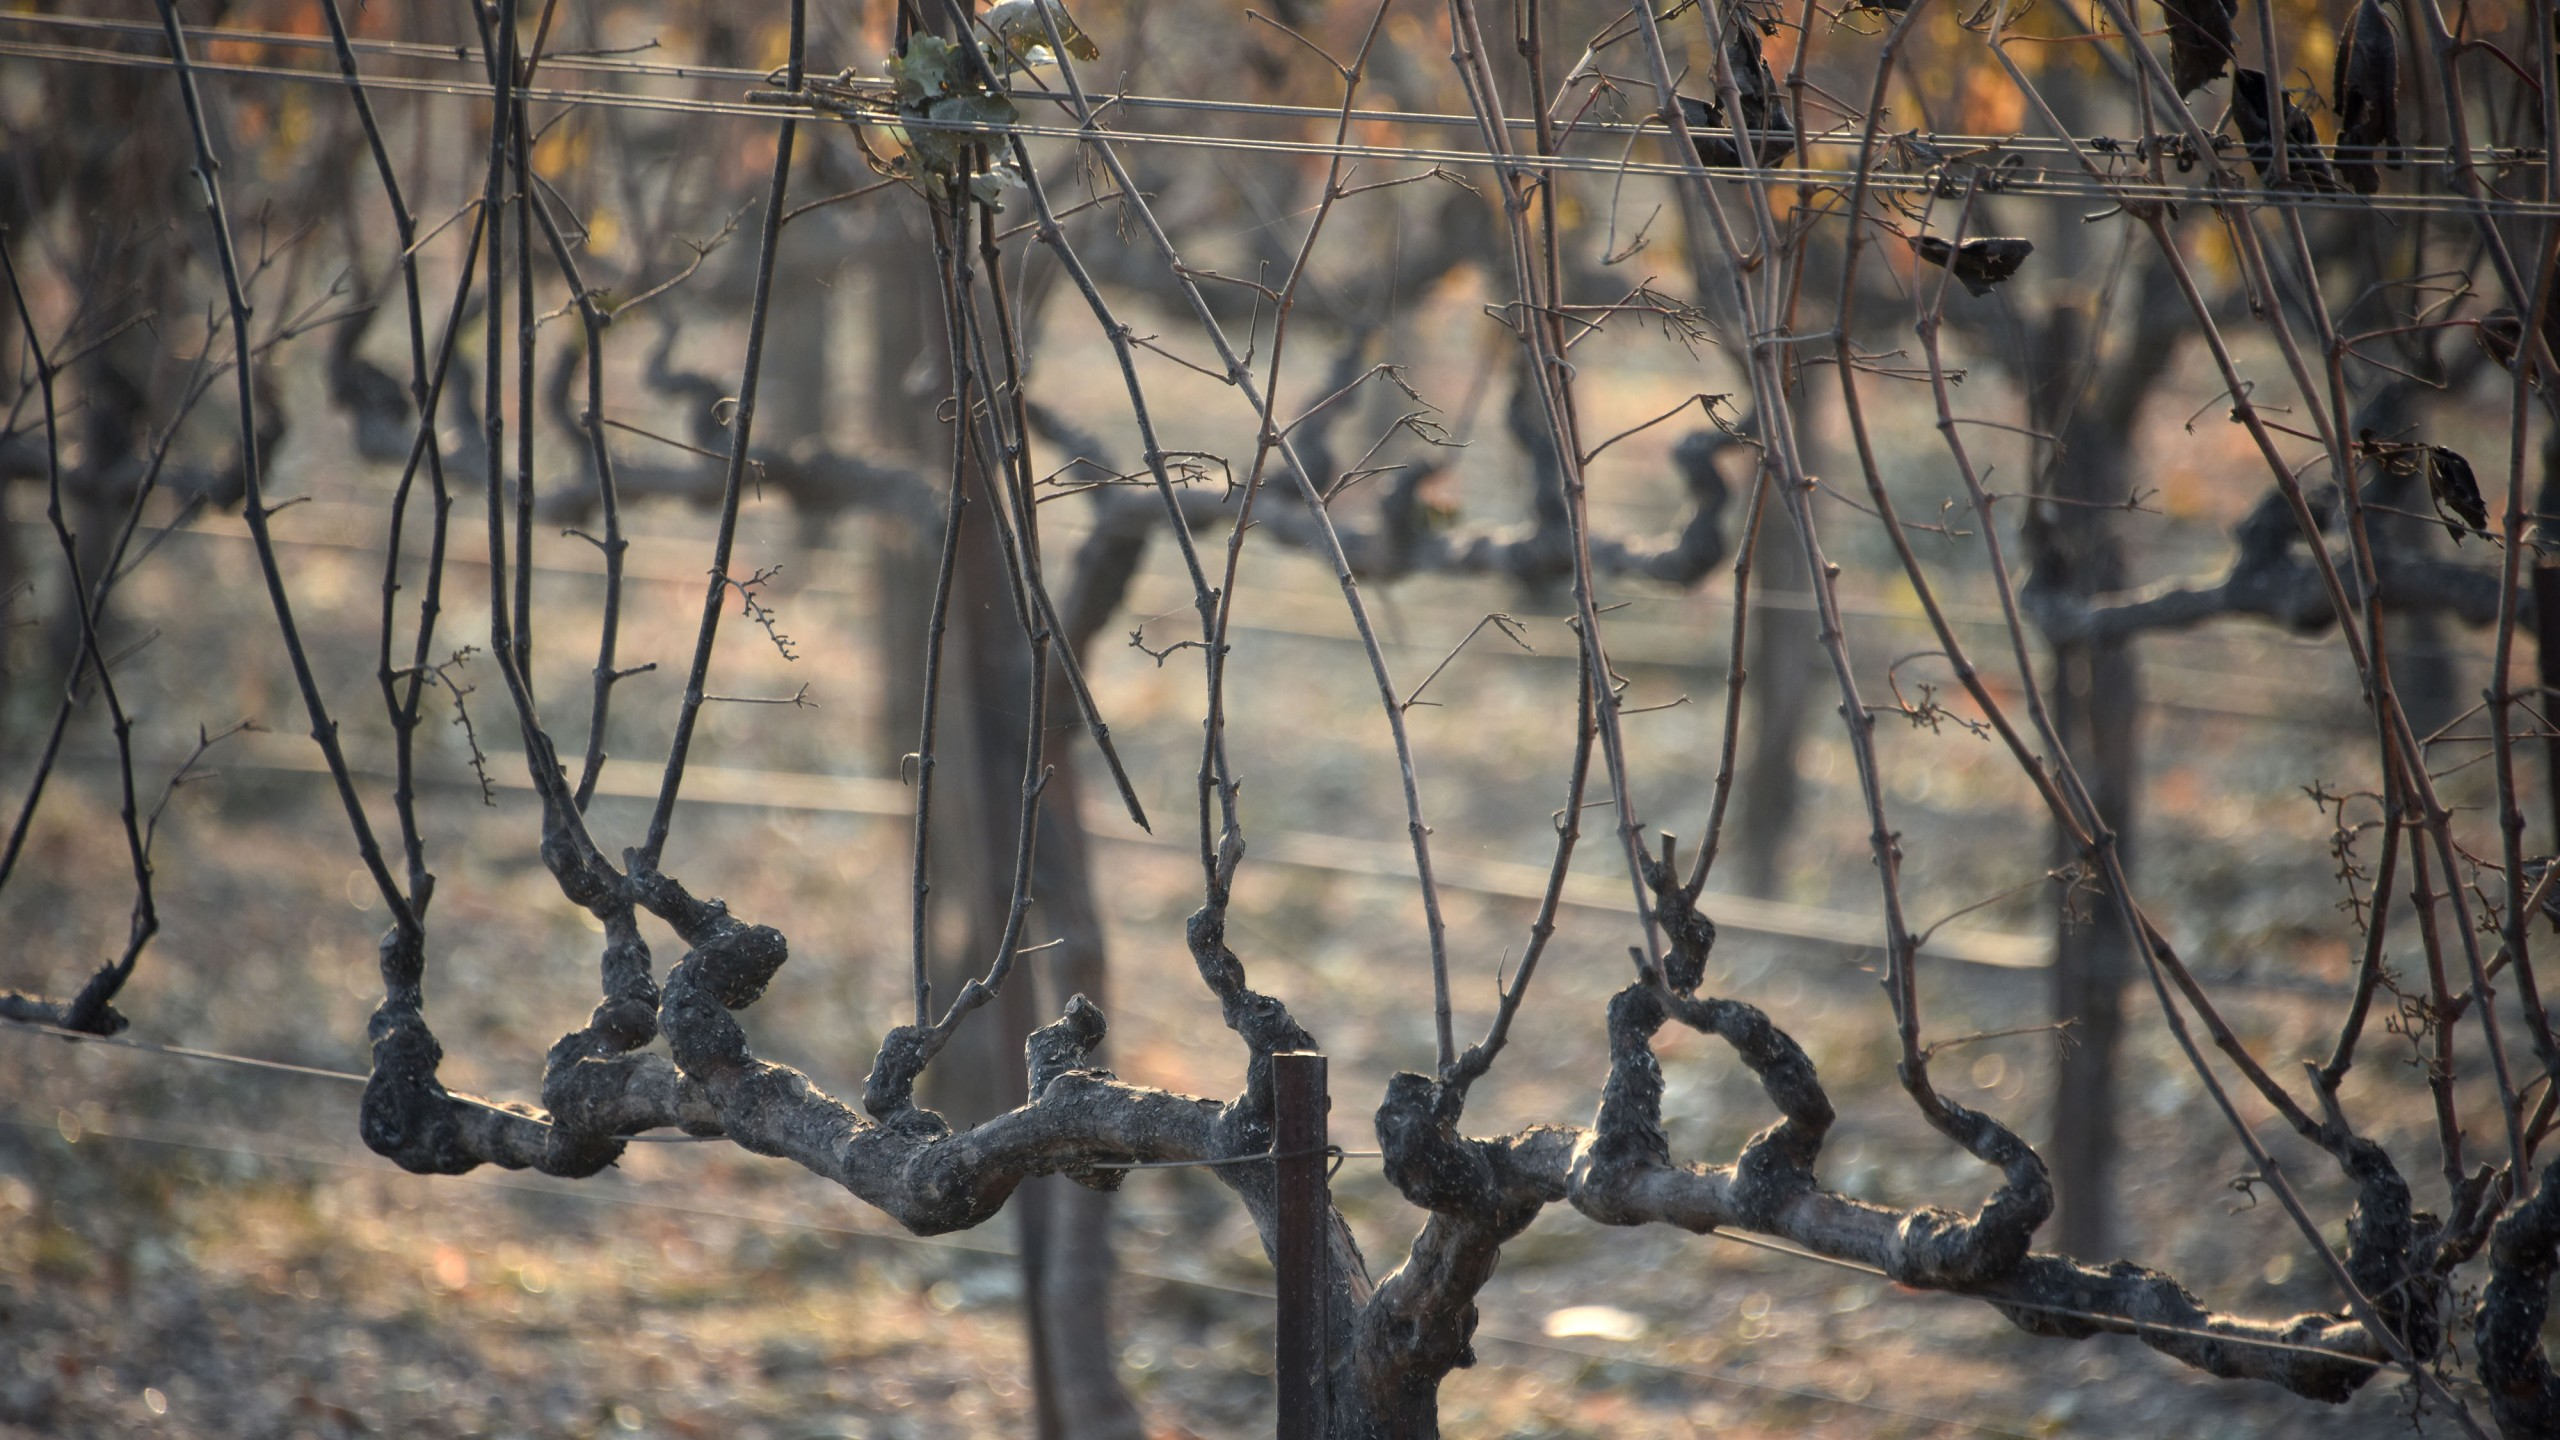 Grape vines damaged by heat from wildfires are seen at a vineyard in Santa Rosa, California, on October 11, 2017. (Credit: ROBYN BECK/AFP/Getty Images)